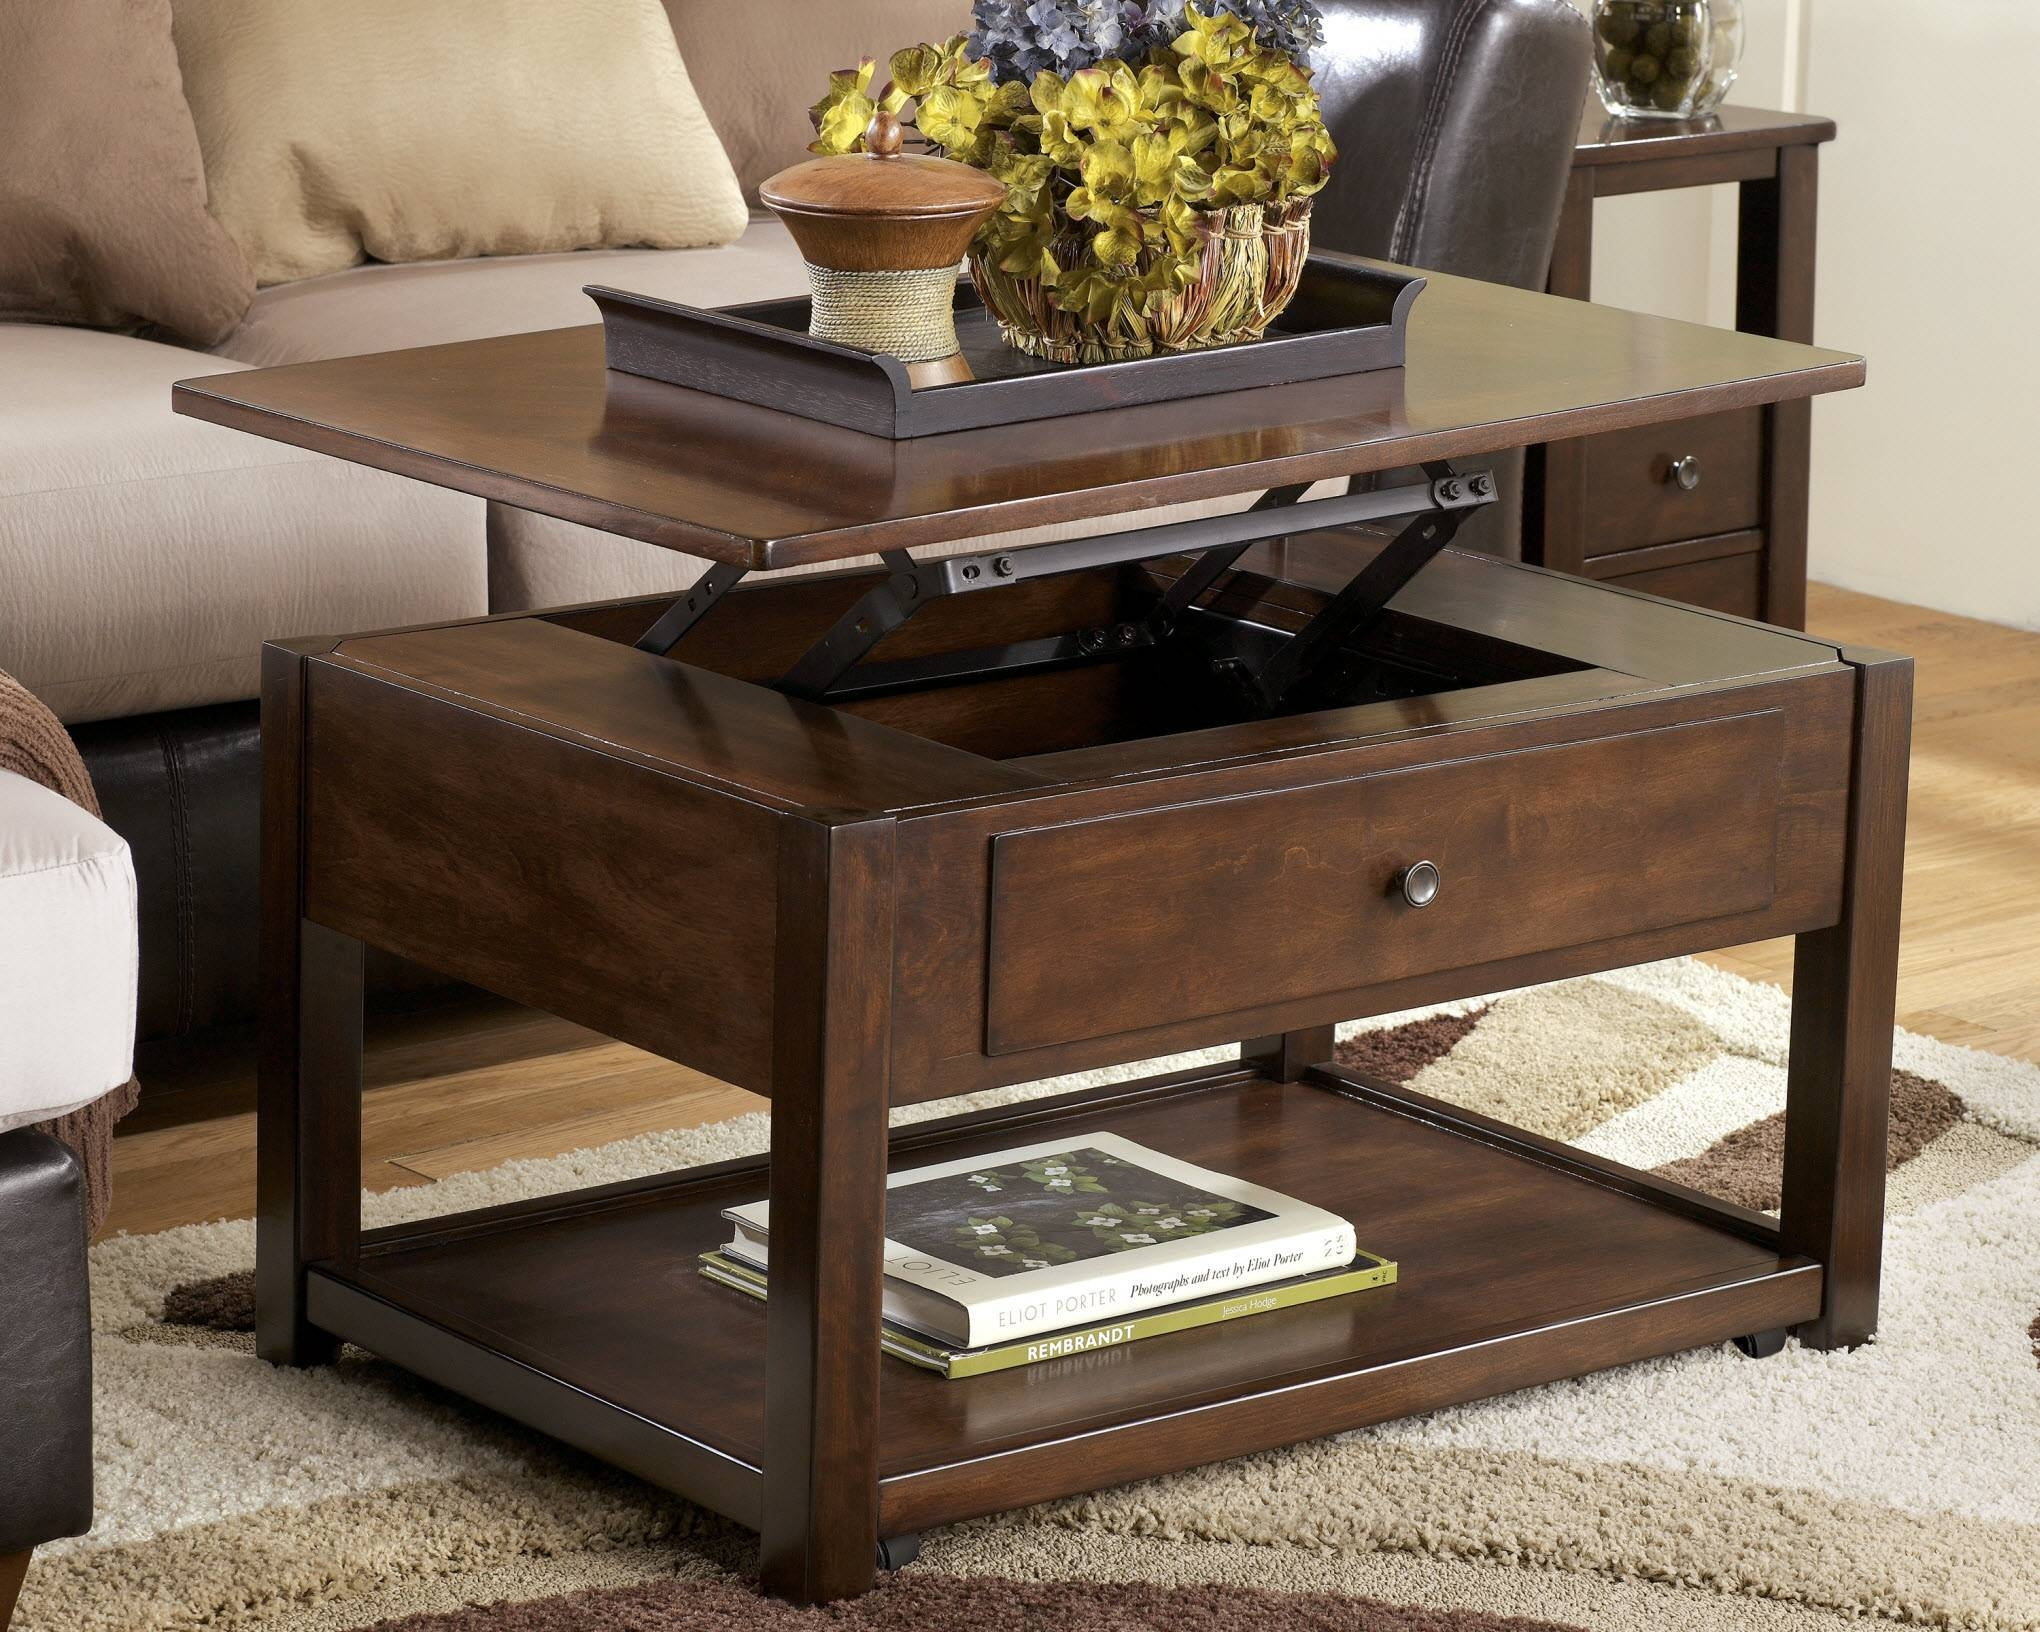 Pull Up Coffee Table In Opens Up Coffee Tables (View 23 of 30)